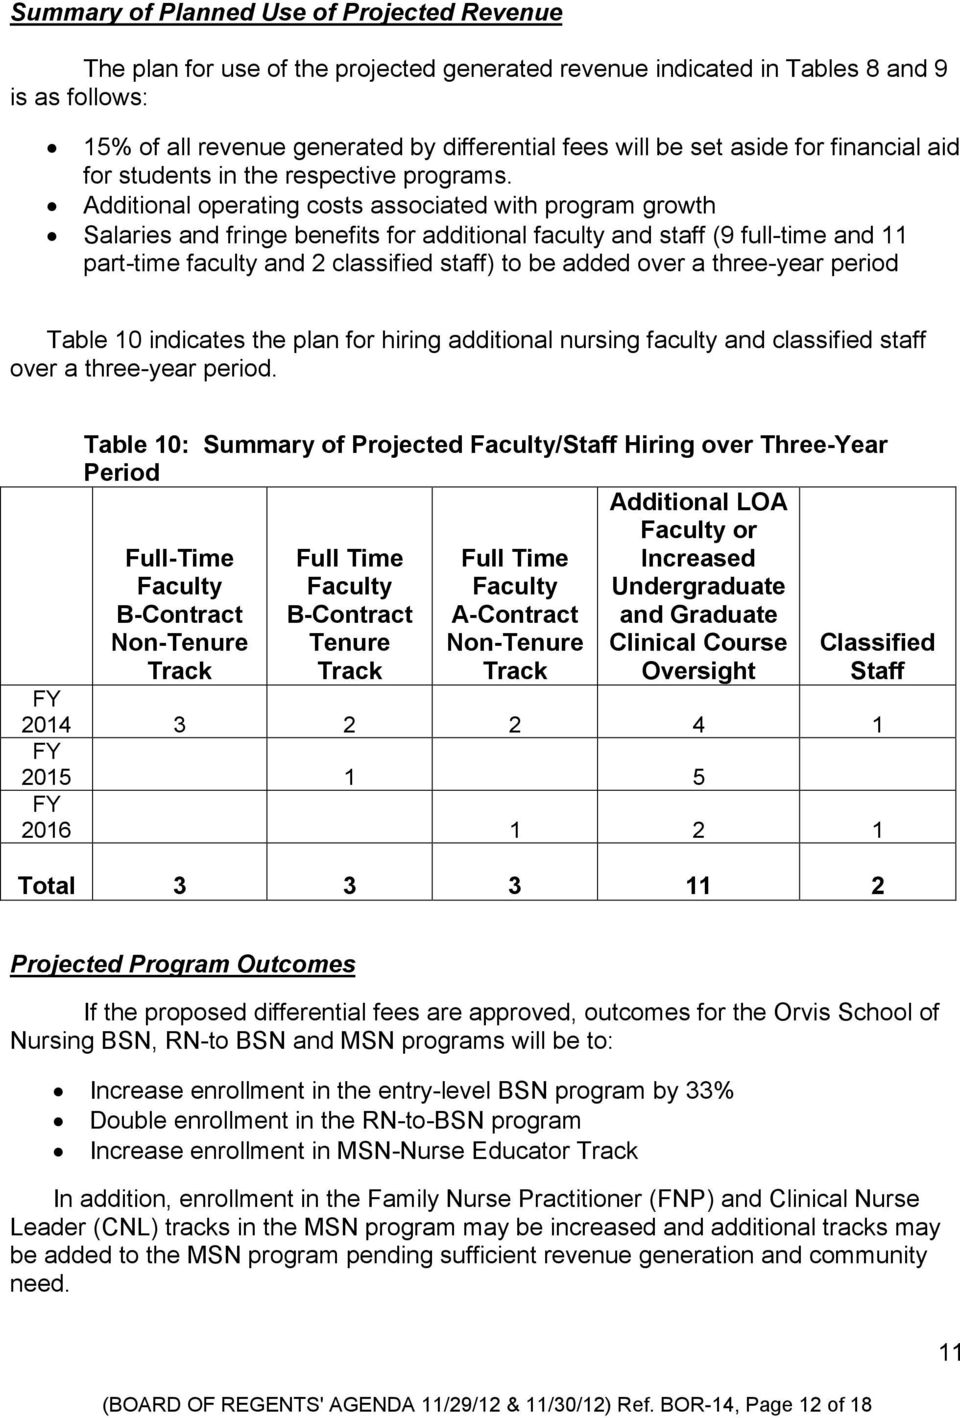 Additional operating costs associated with program growth Salaries and fringe benefits for additional faculty and staff (9 full-time and 11 part-time faculty and 2 classified staff) to be added over